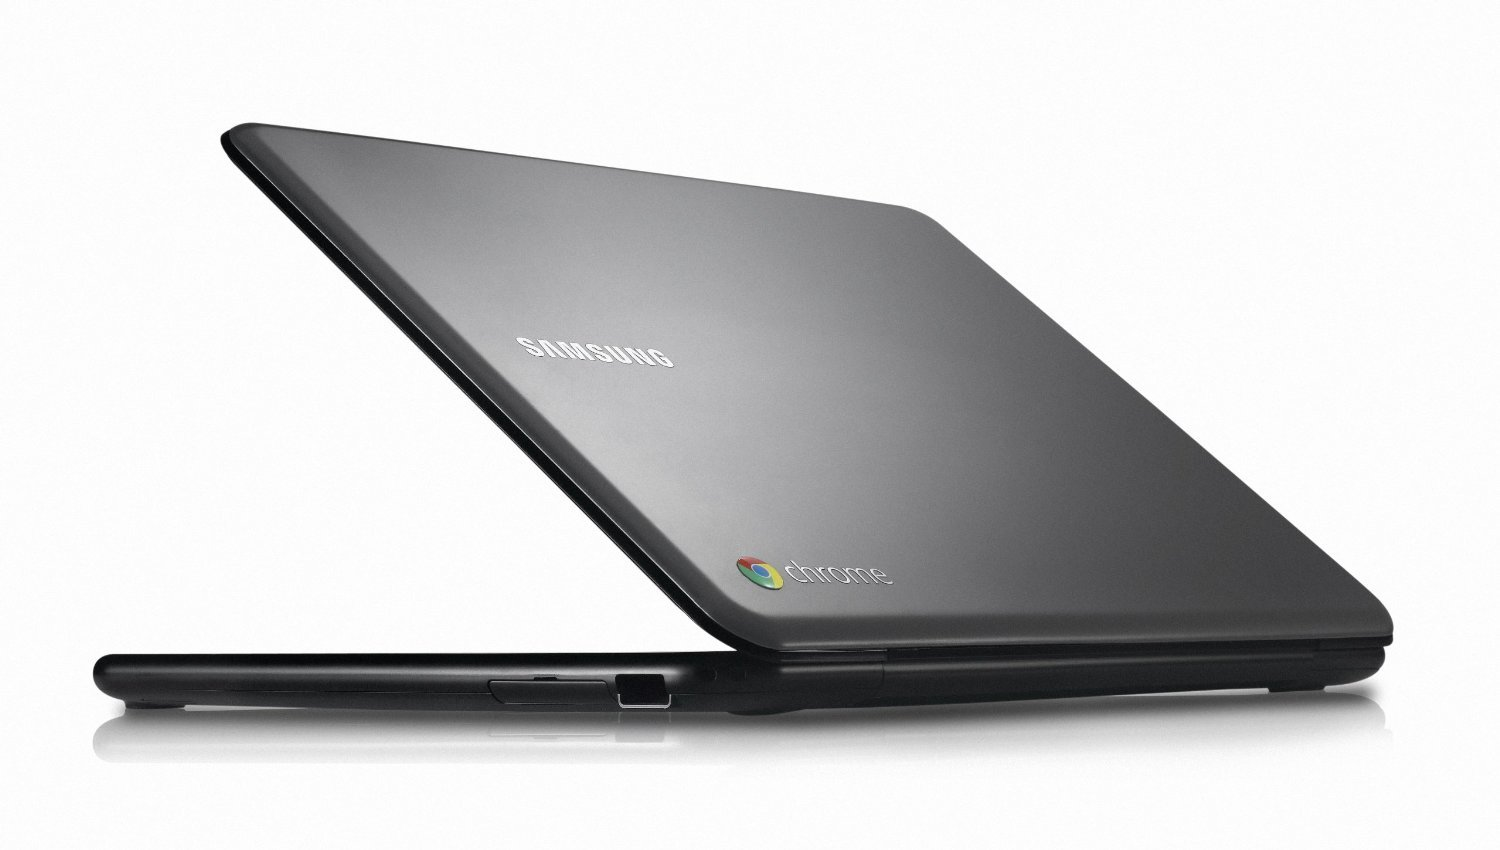 The Samsung Chromebook 5 is an cheaper alternative laptop.